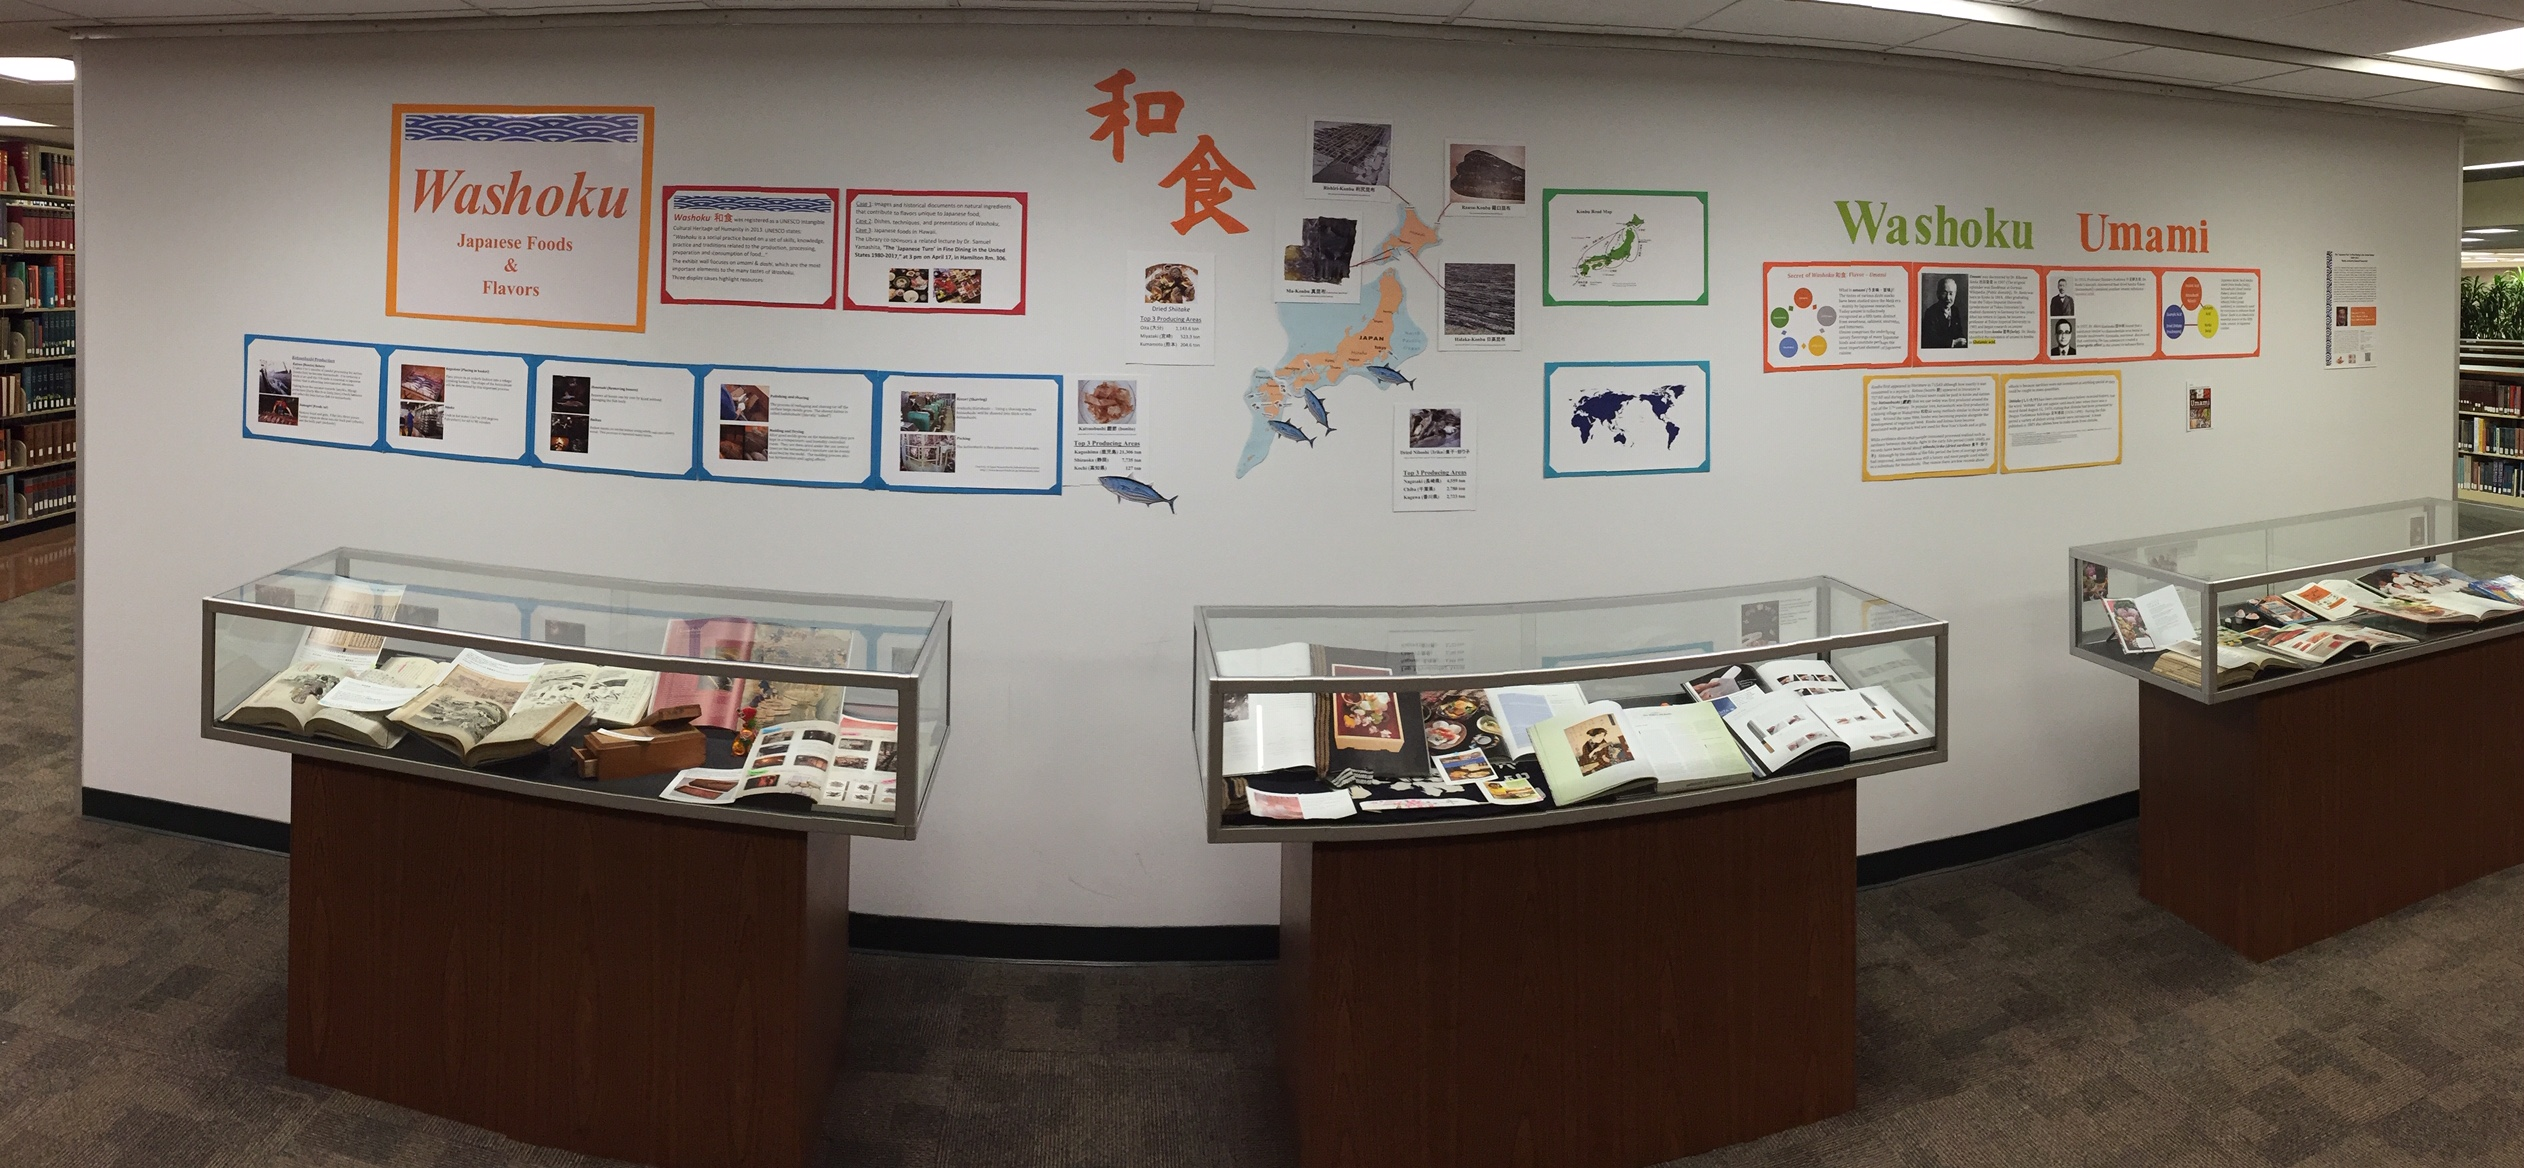 Posters and display cases for Washoku exhibit